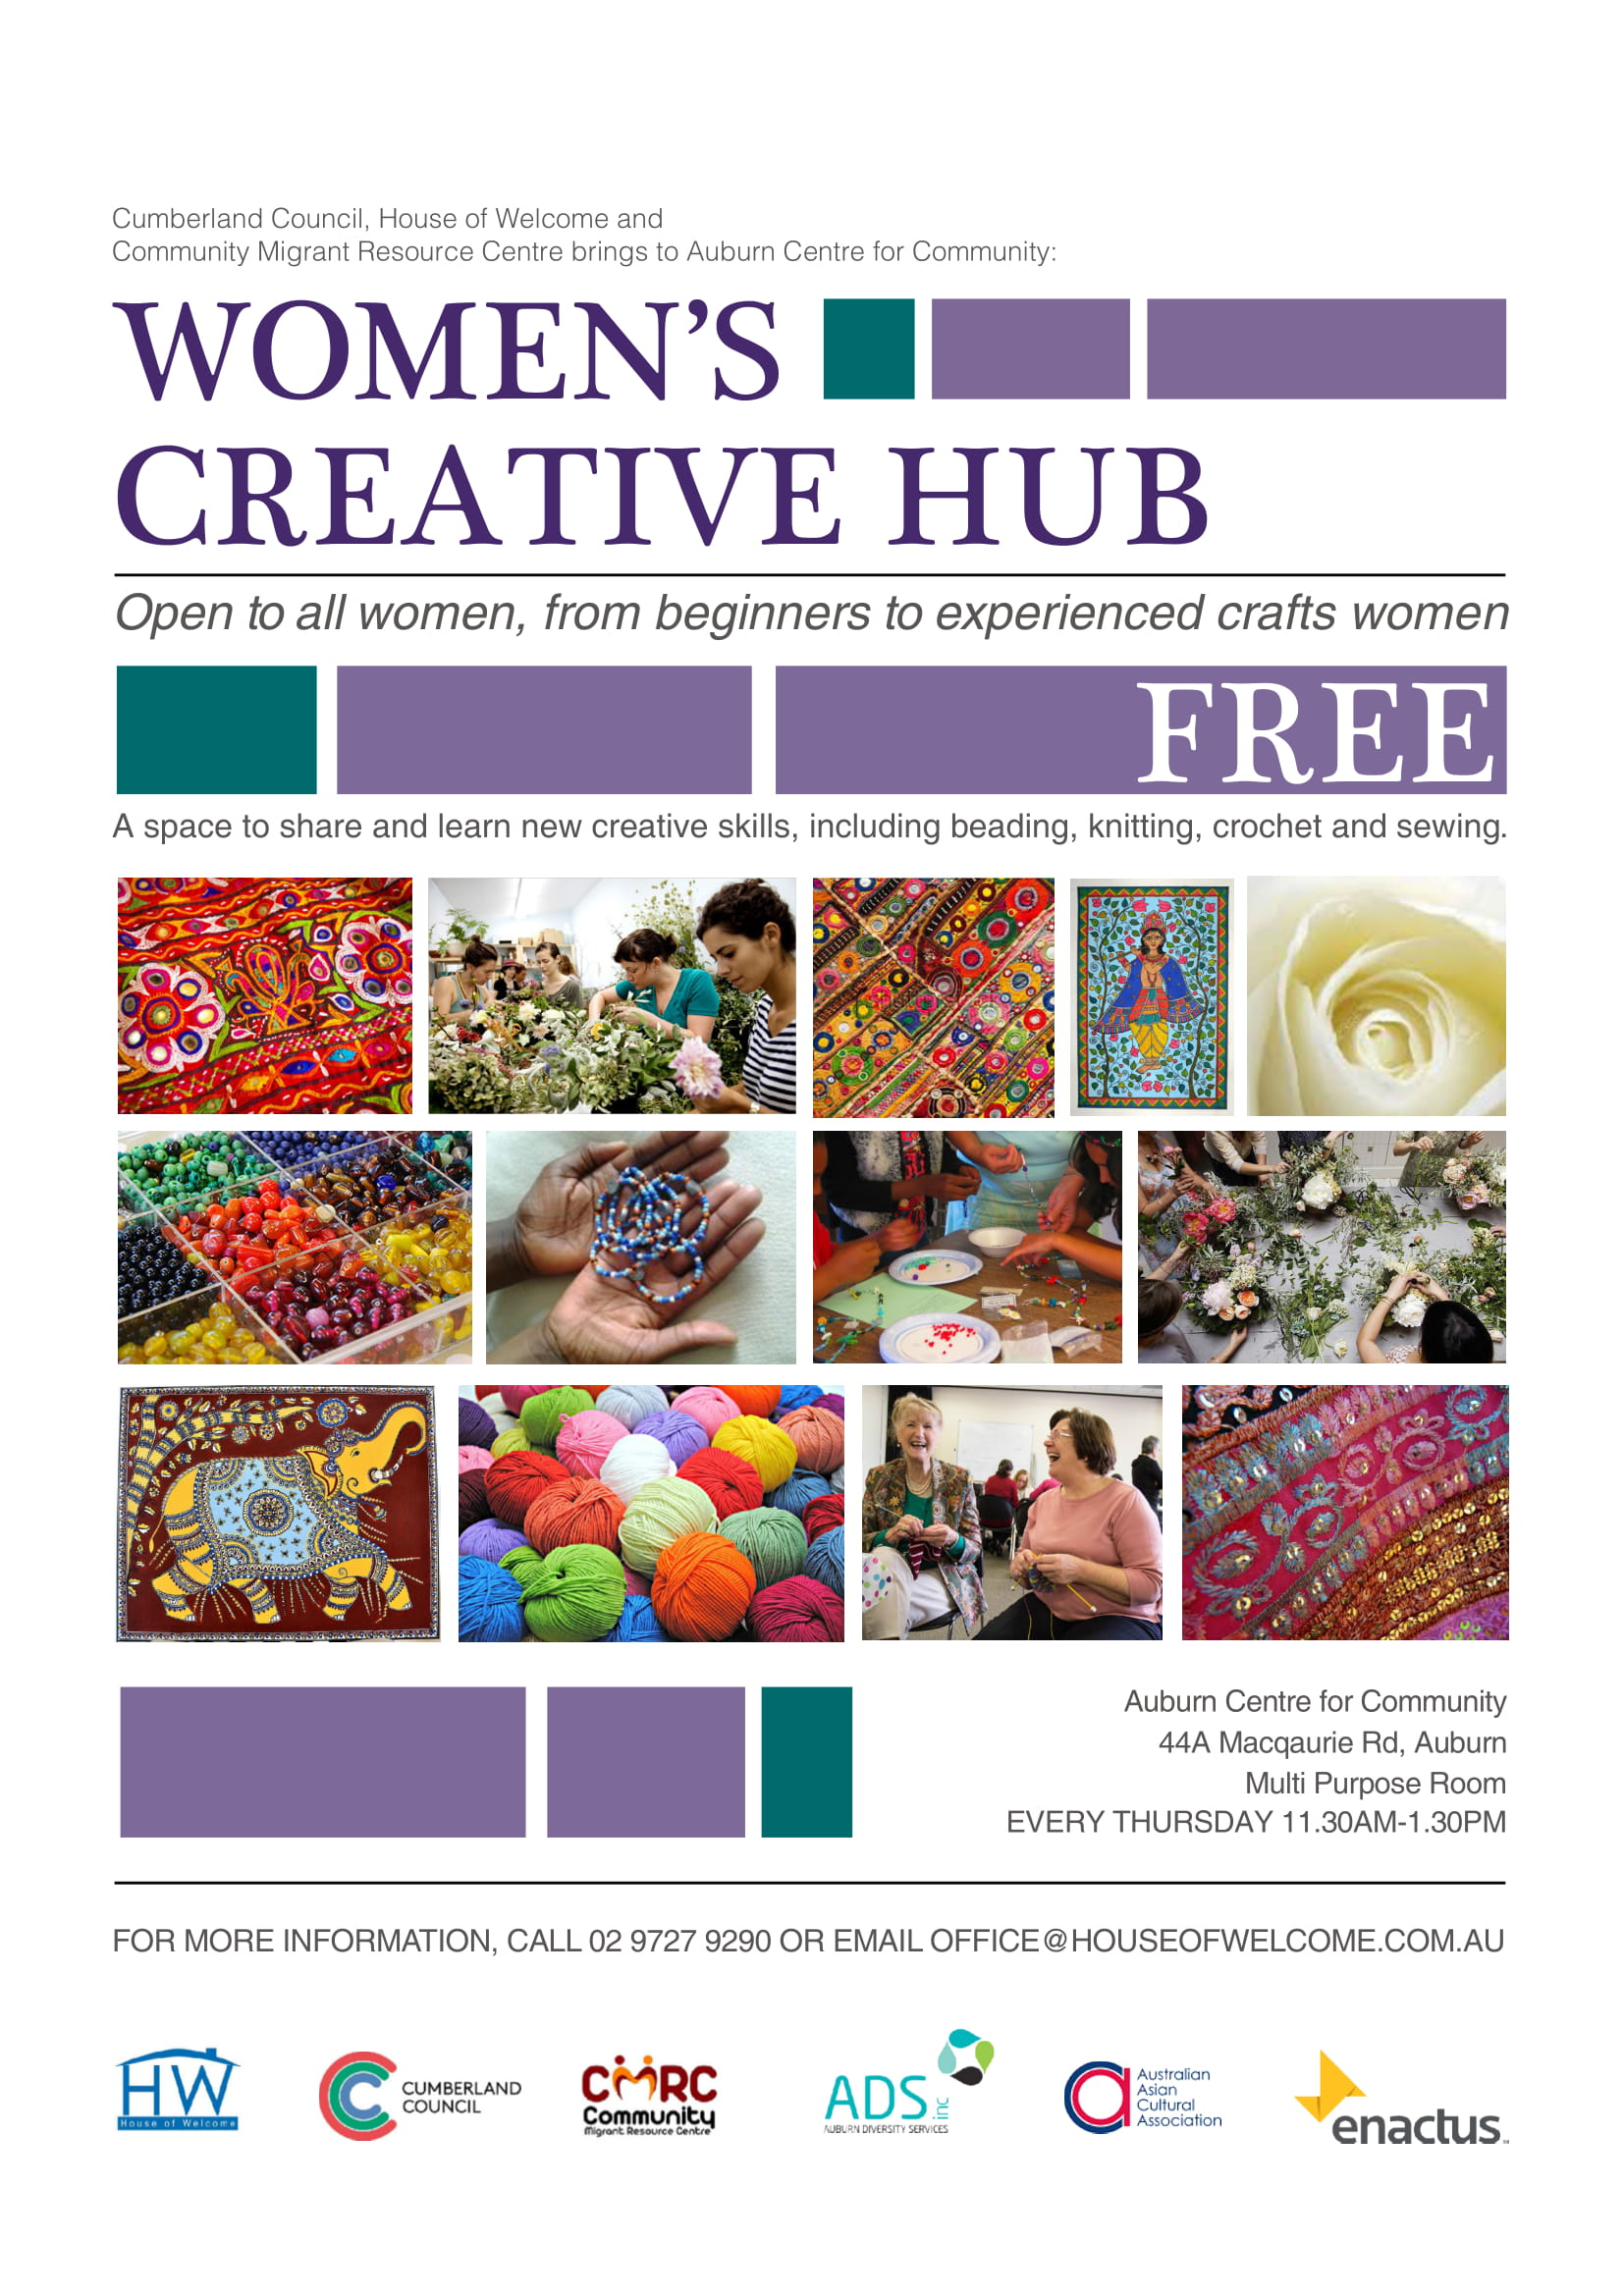 Cumberland Council Women's Creative Hub Flyer-1.jpg